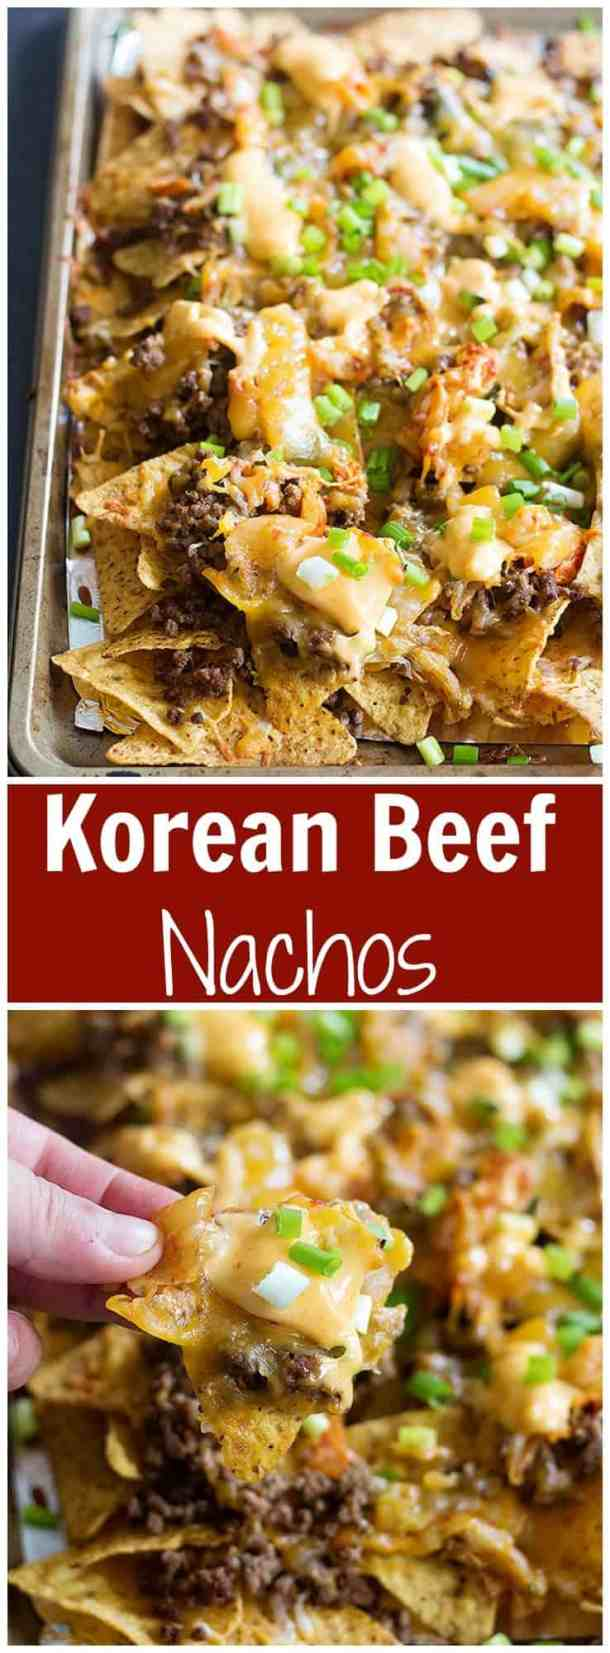 Korean Beef Nachos are a new twist on traditional nachos. The delicious Korean beef topped with Mexican blend cheese and served with sriracha mayo is an unbeatable combination! #koreanbeef #koreanbeefrecipe #groundbeefrecipe